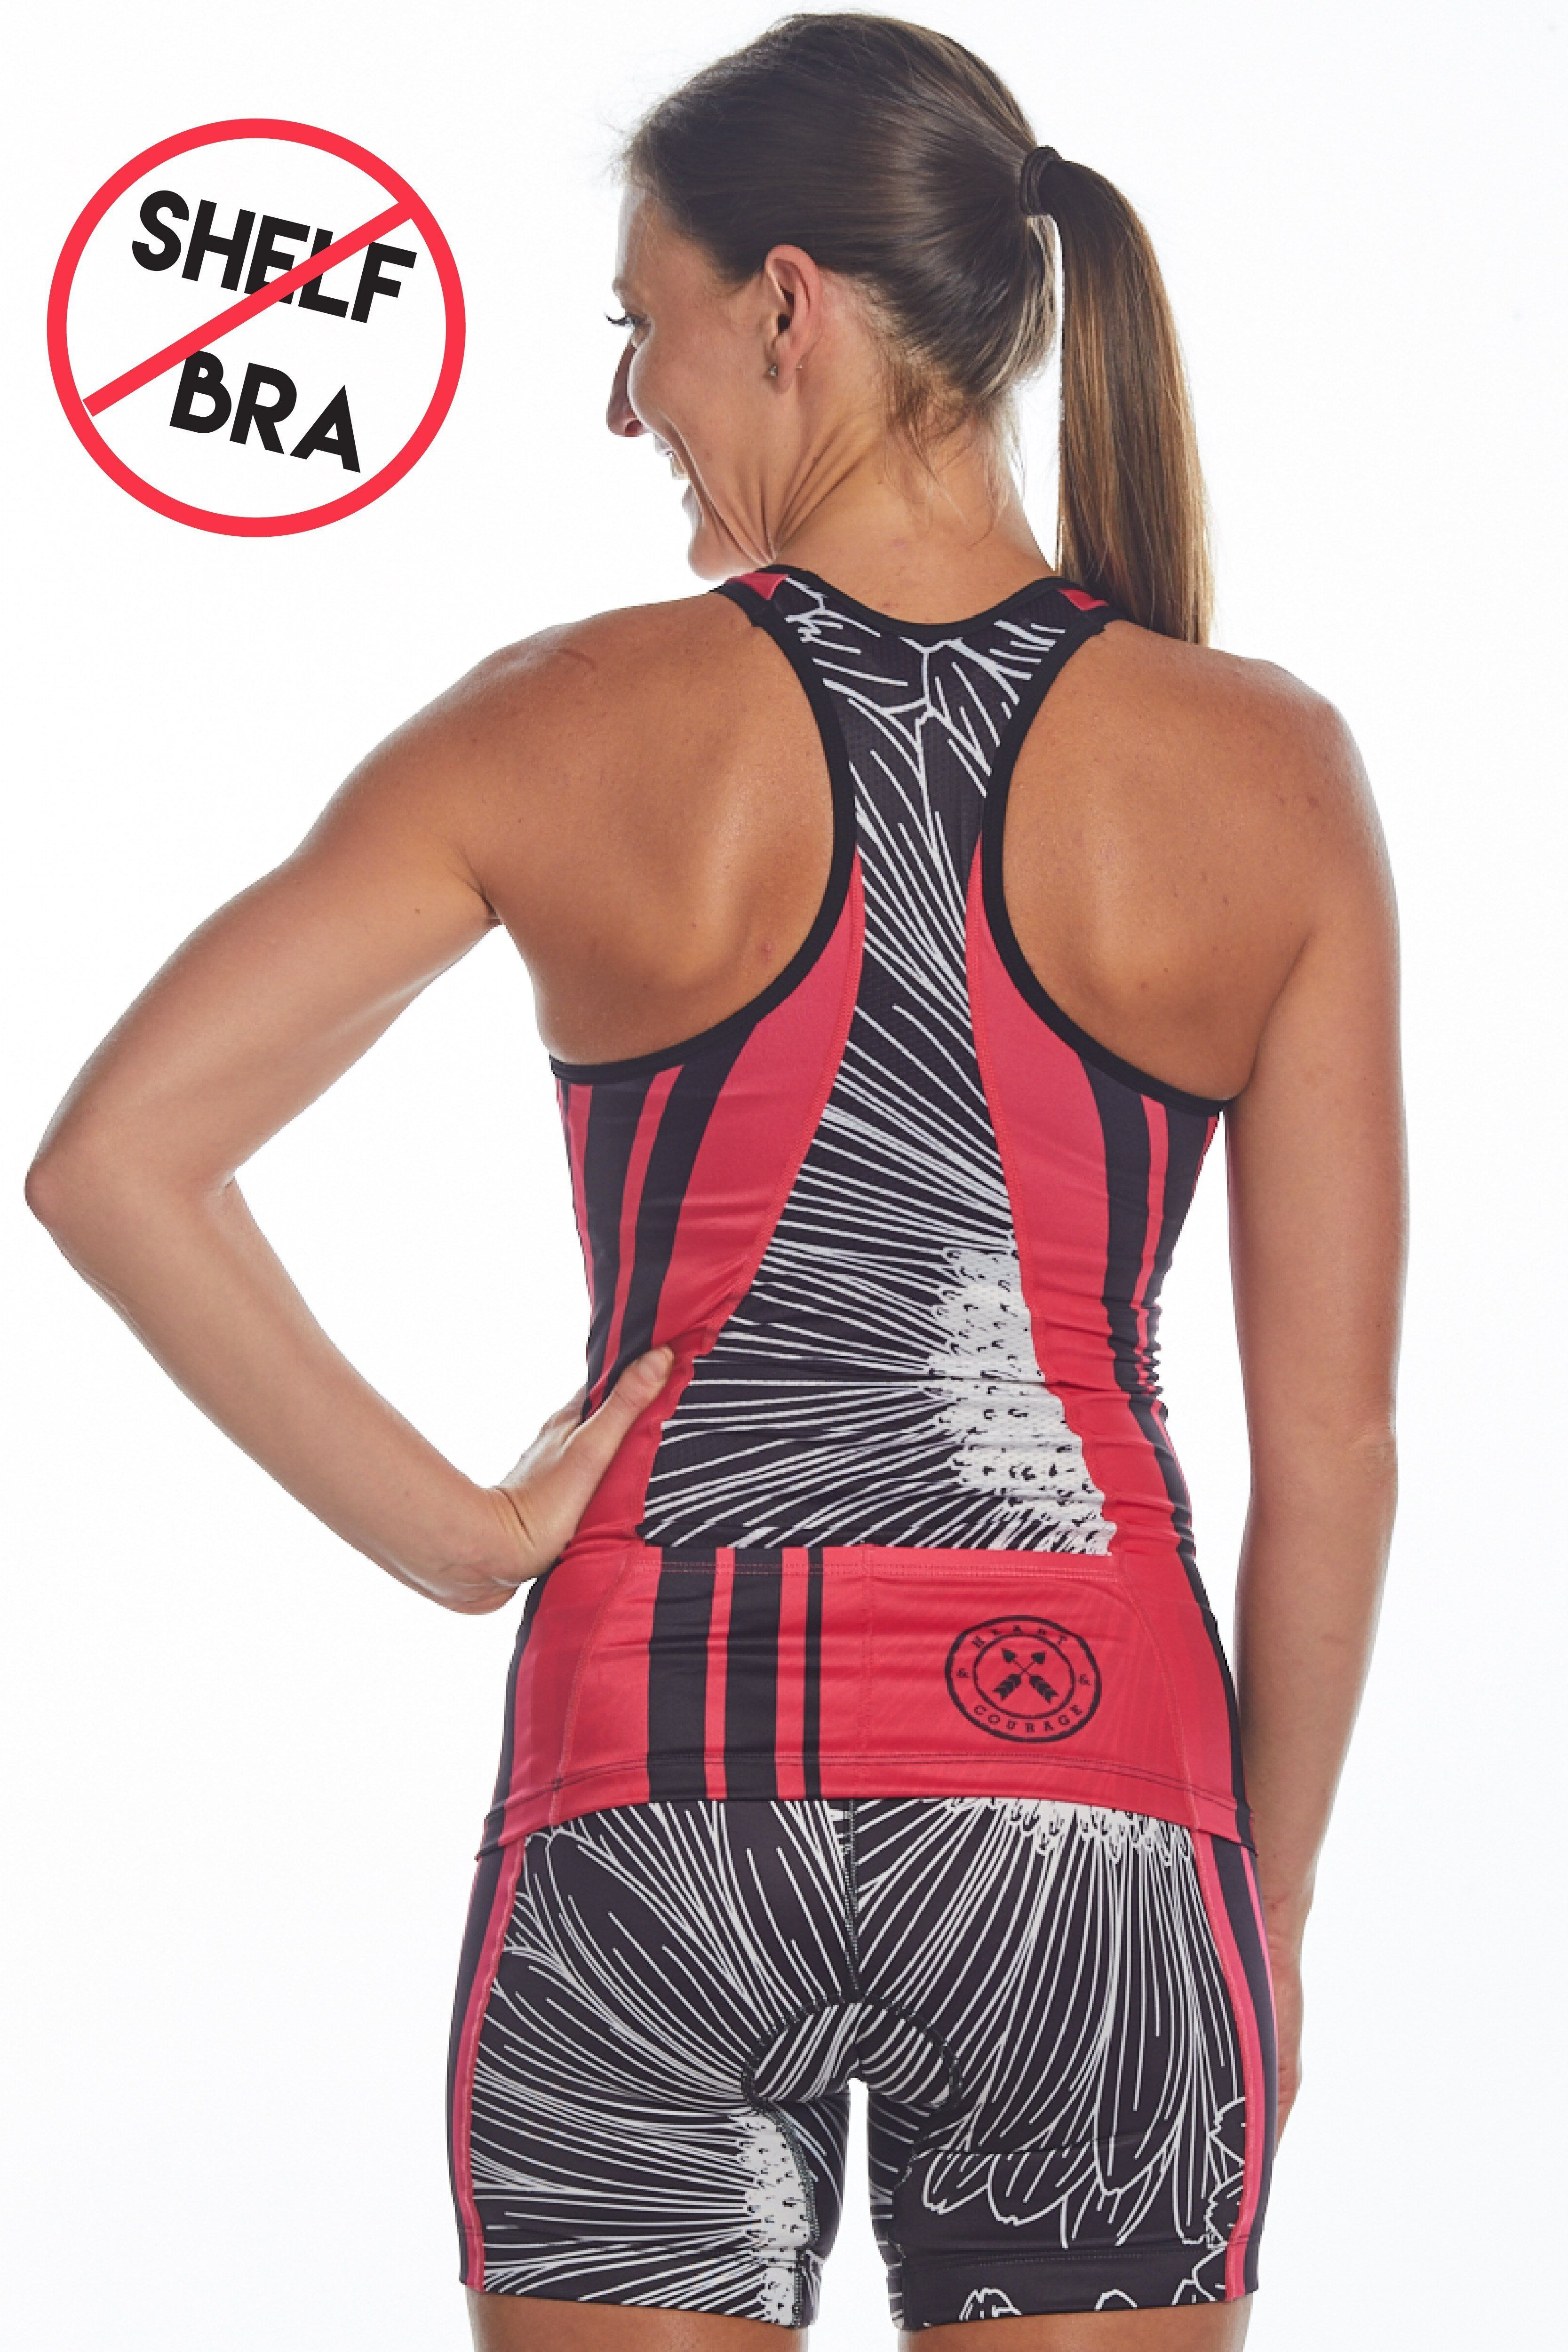 115cfa4bc10a8e Women s Triathlon Tops Our women s tri tops are designed to work with our  tri shorts as a complete system. Just like our tri shorts